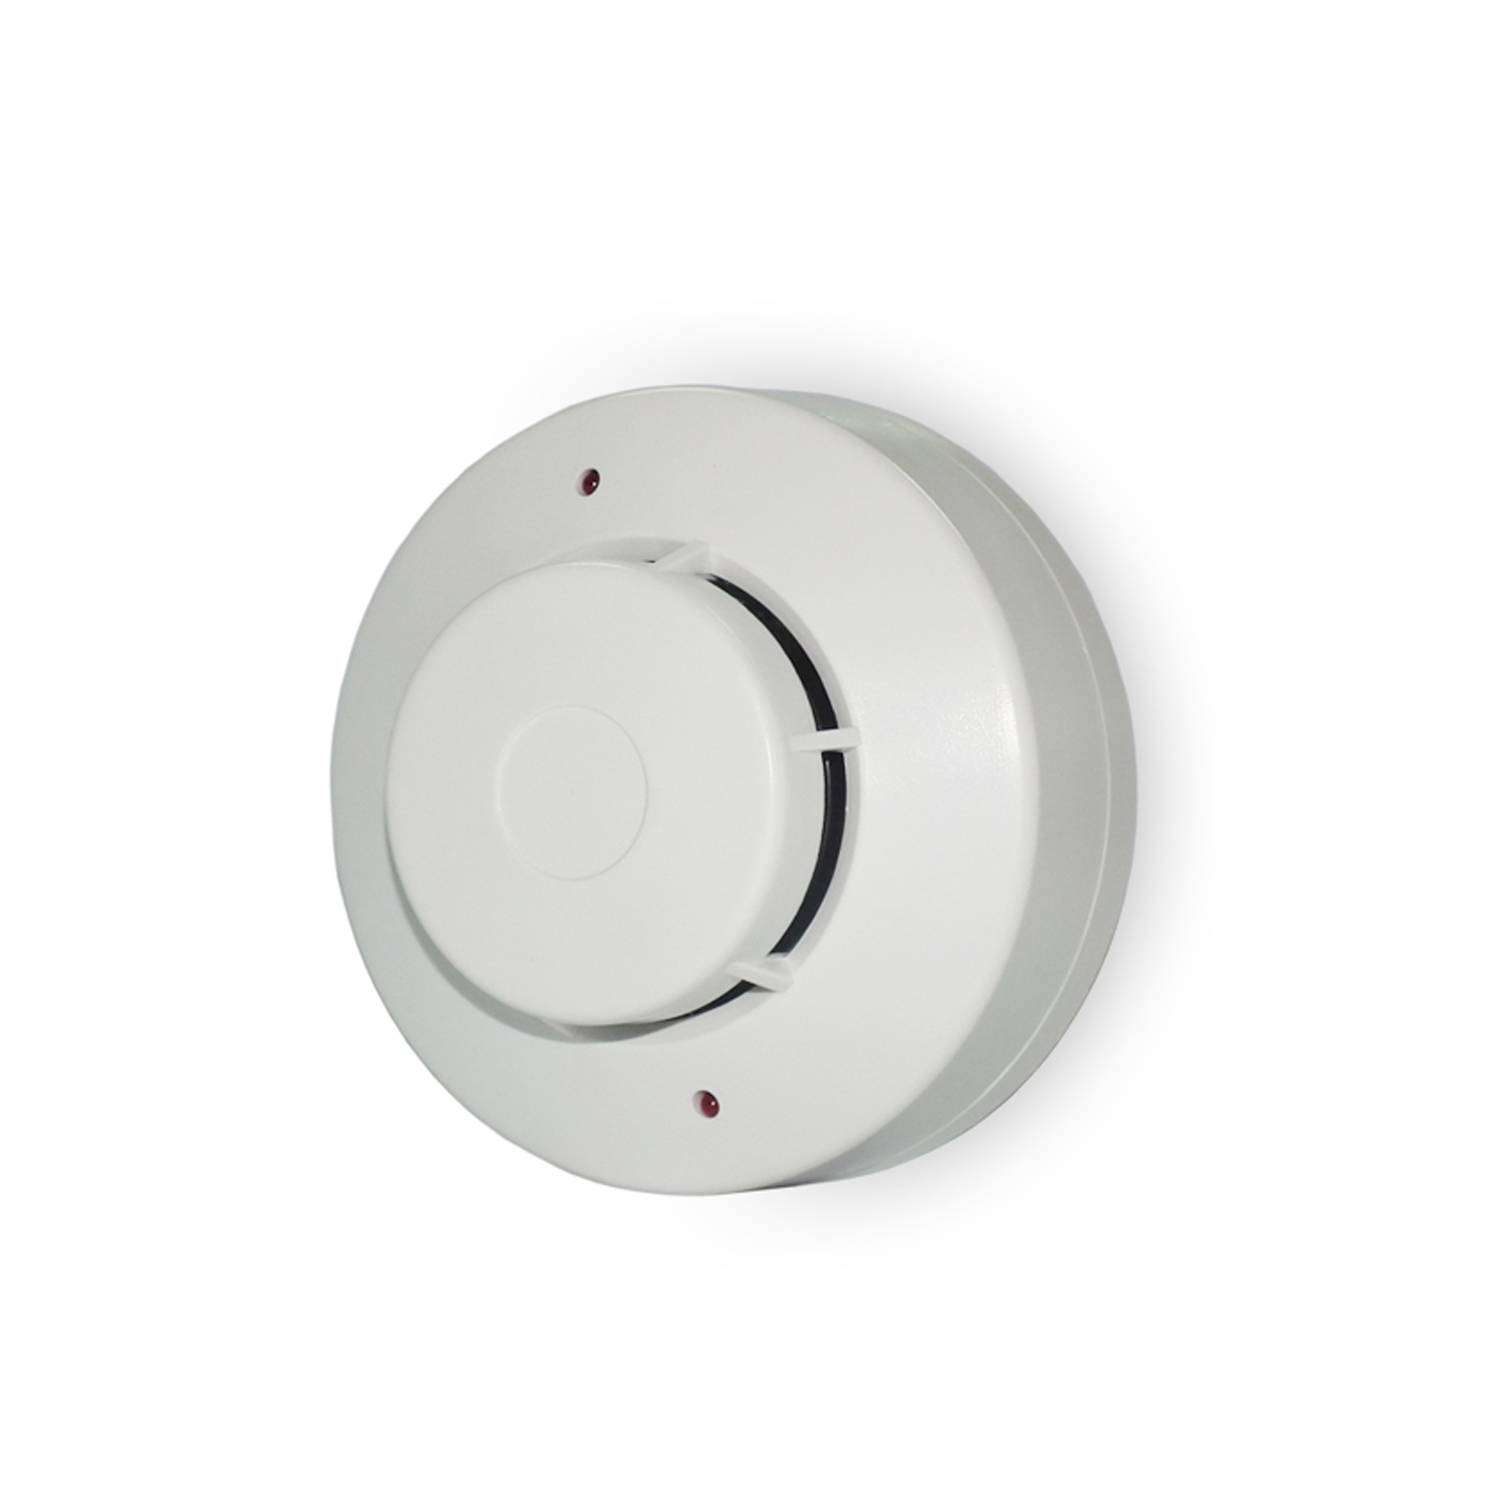 SMT Network Combustible Ceiling Mounted Fire and Gas Detector,MCU